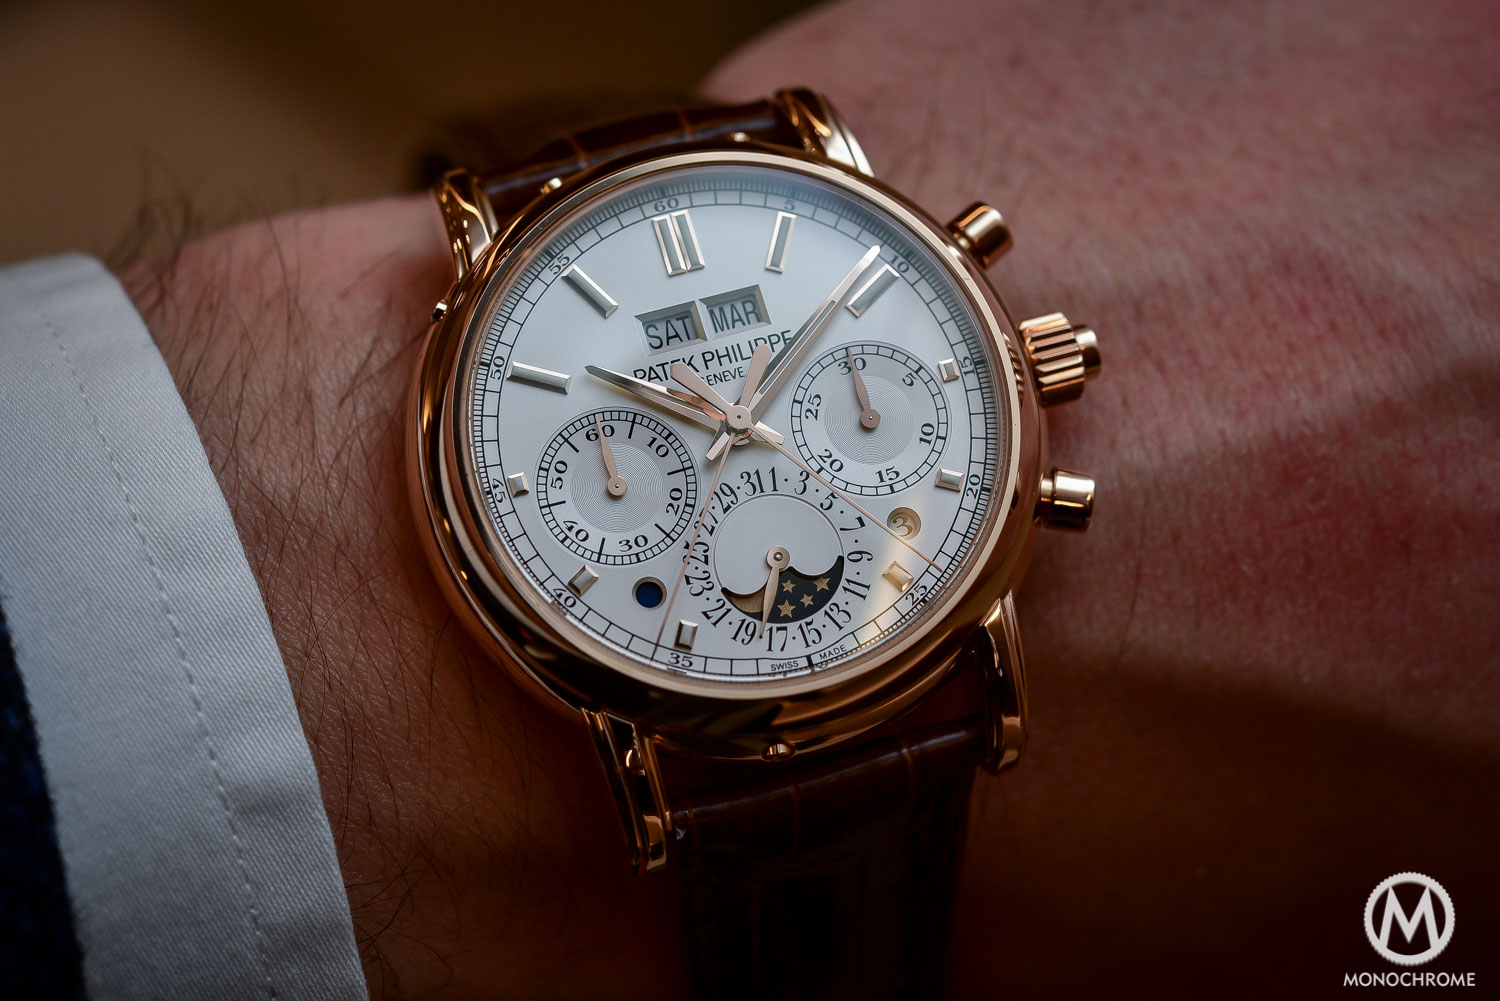 P Philippe Watch Hands On Patek Philippe 5204r Split Seconds Chronograph